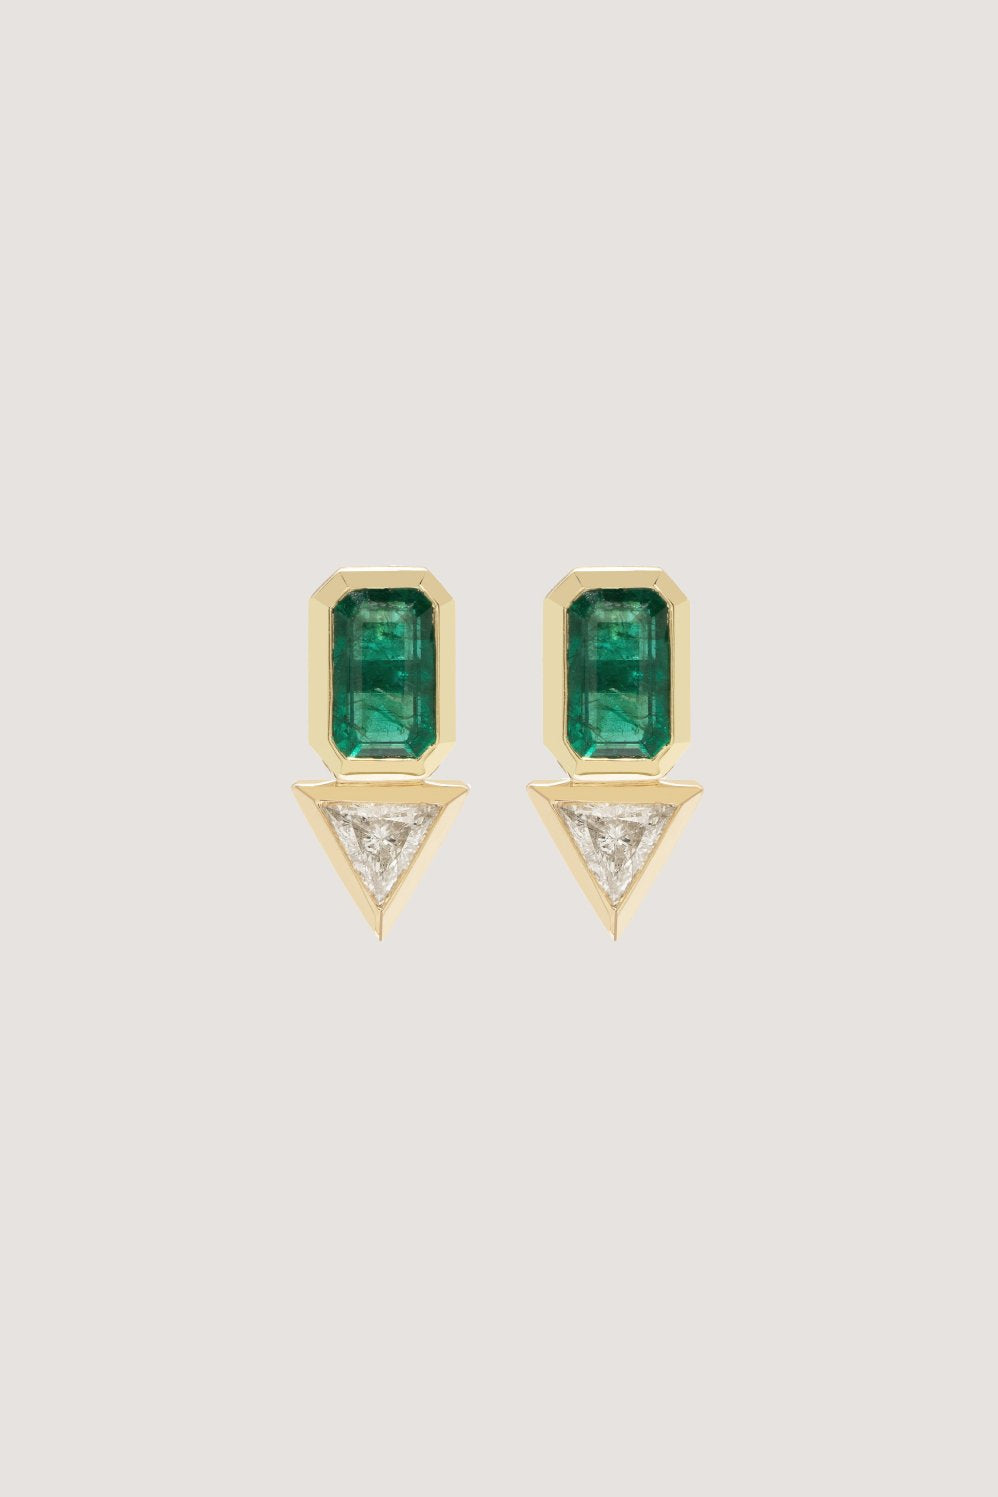 Azlee - Emerald & Trillion Diamond Studs, Gold